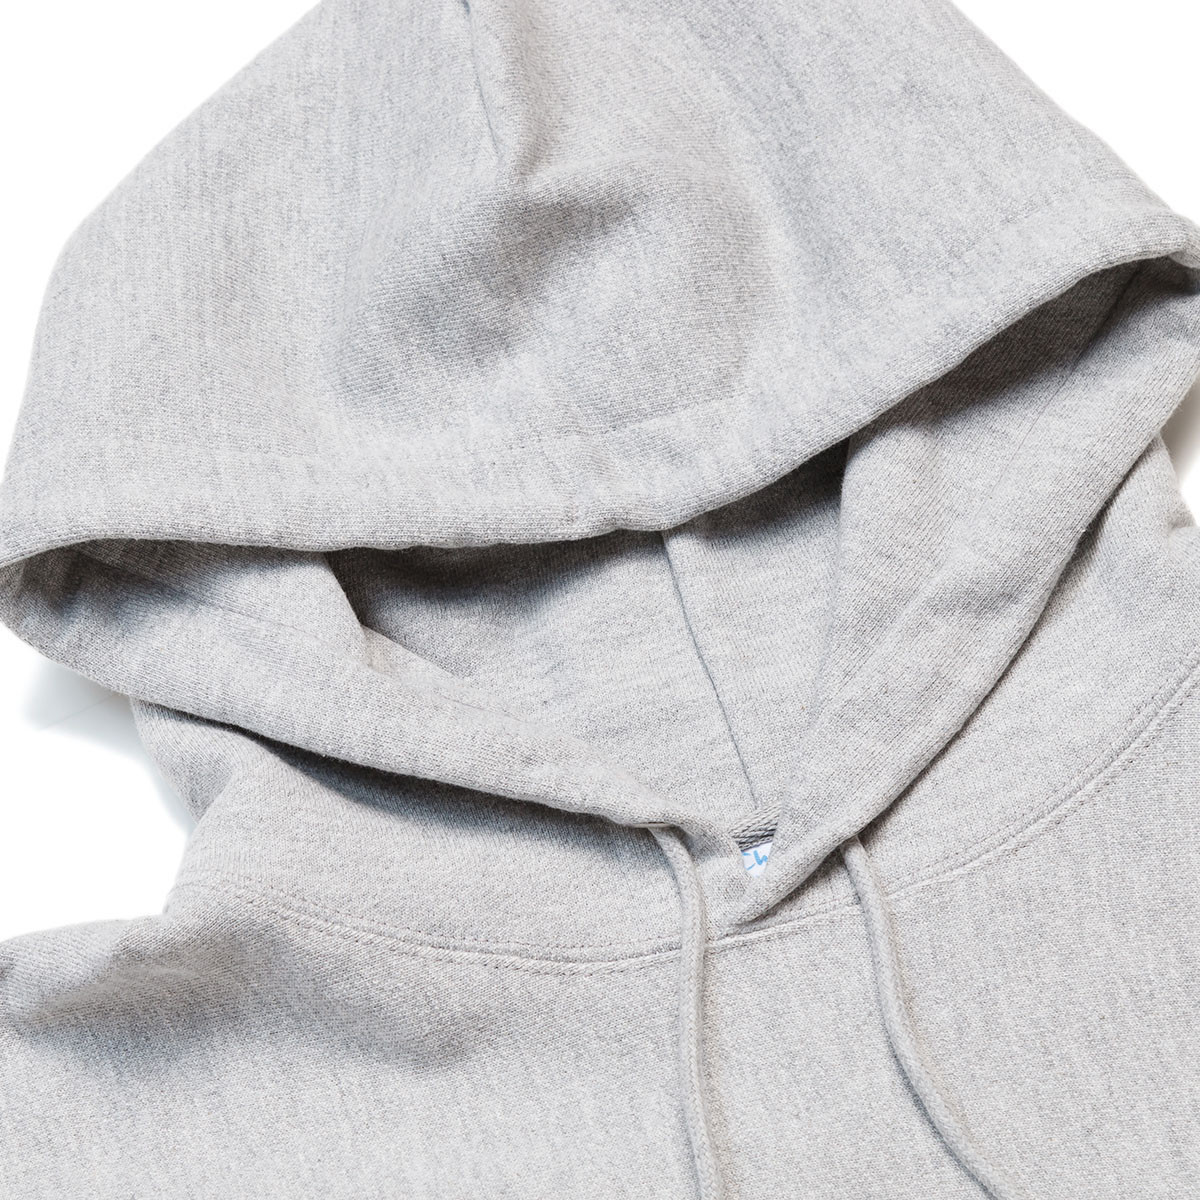 gery heavy fleece hoodie custom cheap fleece pullover hoodies pullover fleece hoodie